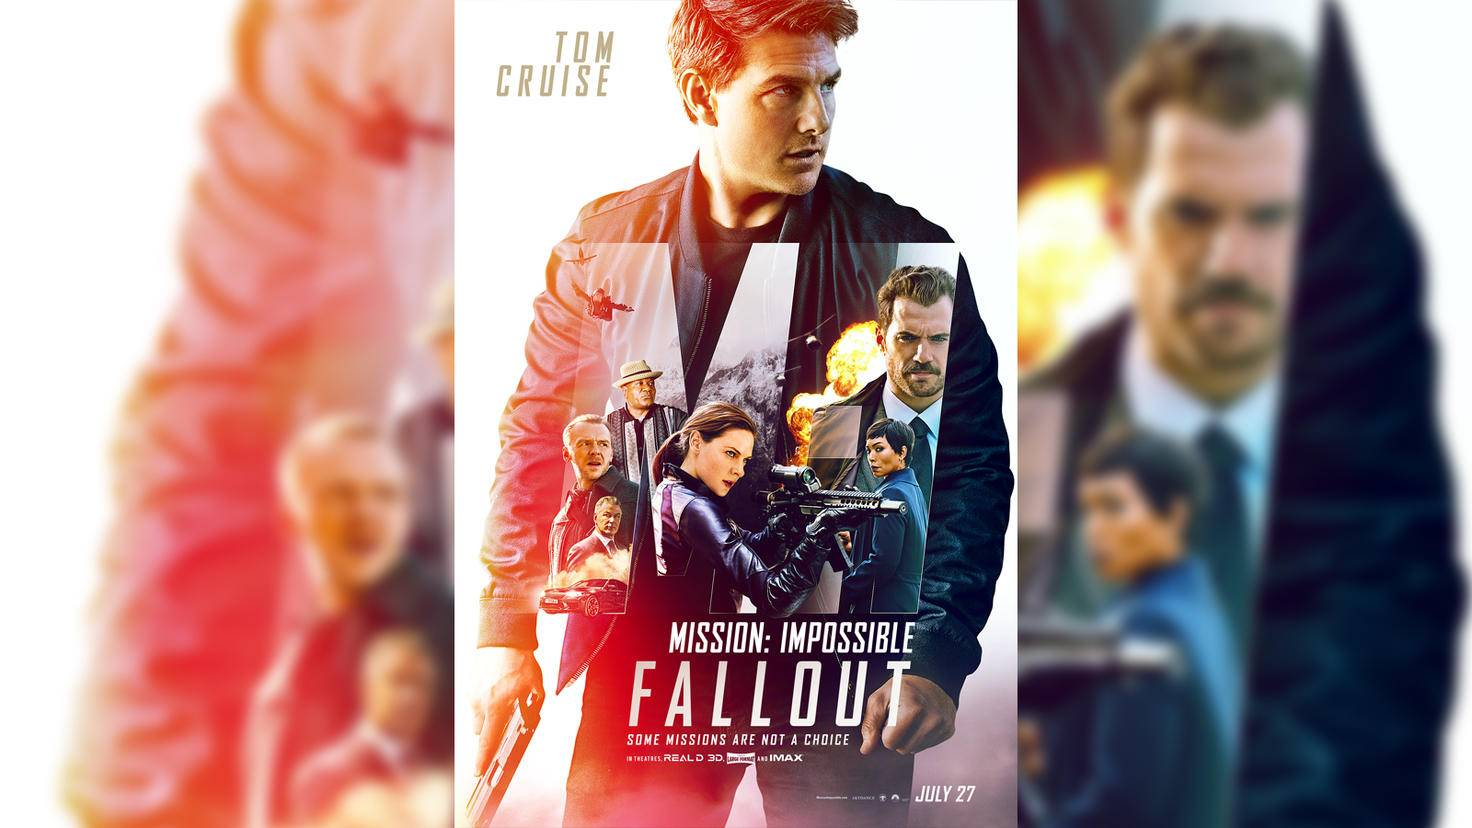 Mission Impossible 6 Fallout-Poster-Paramount Pictures